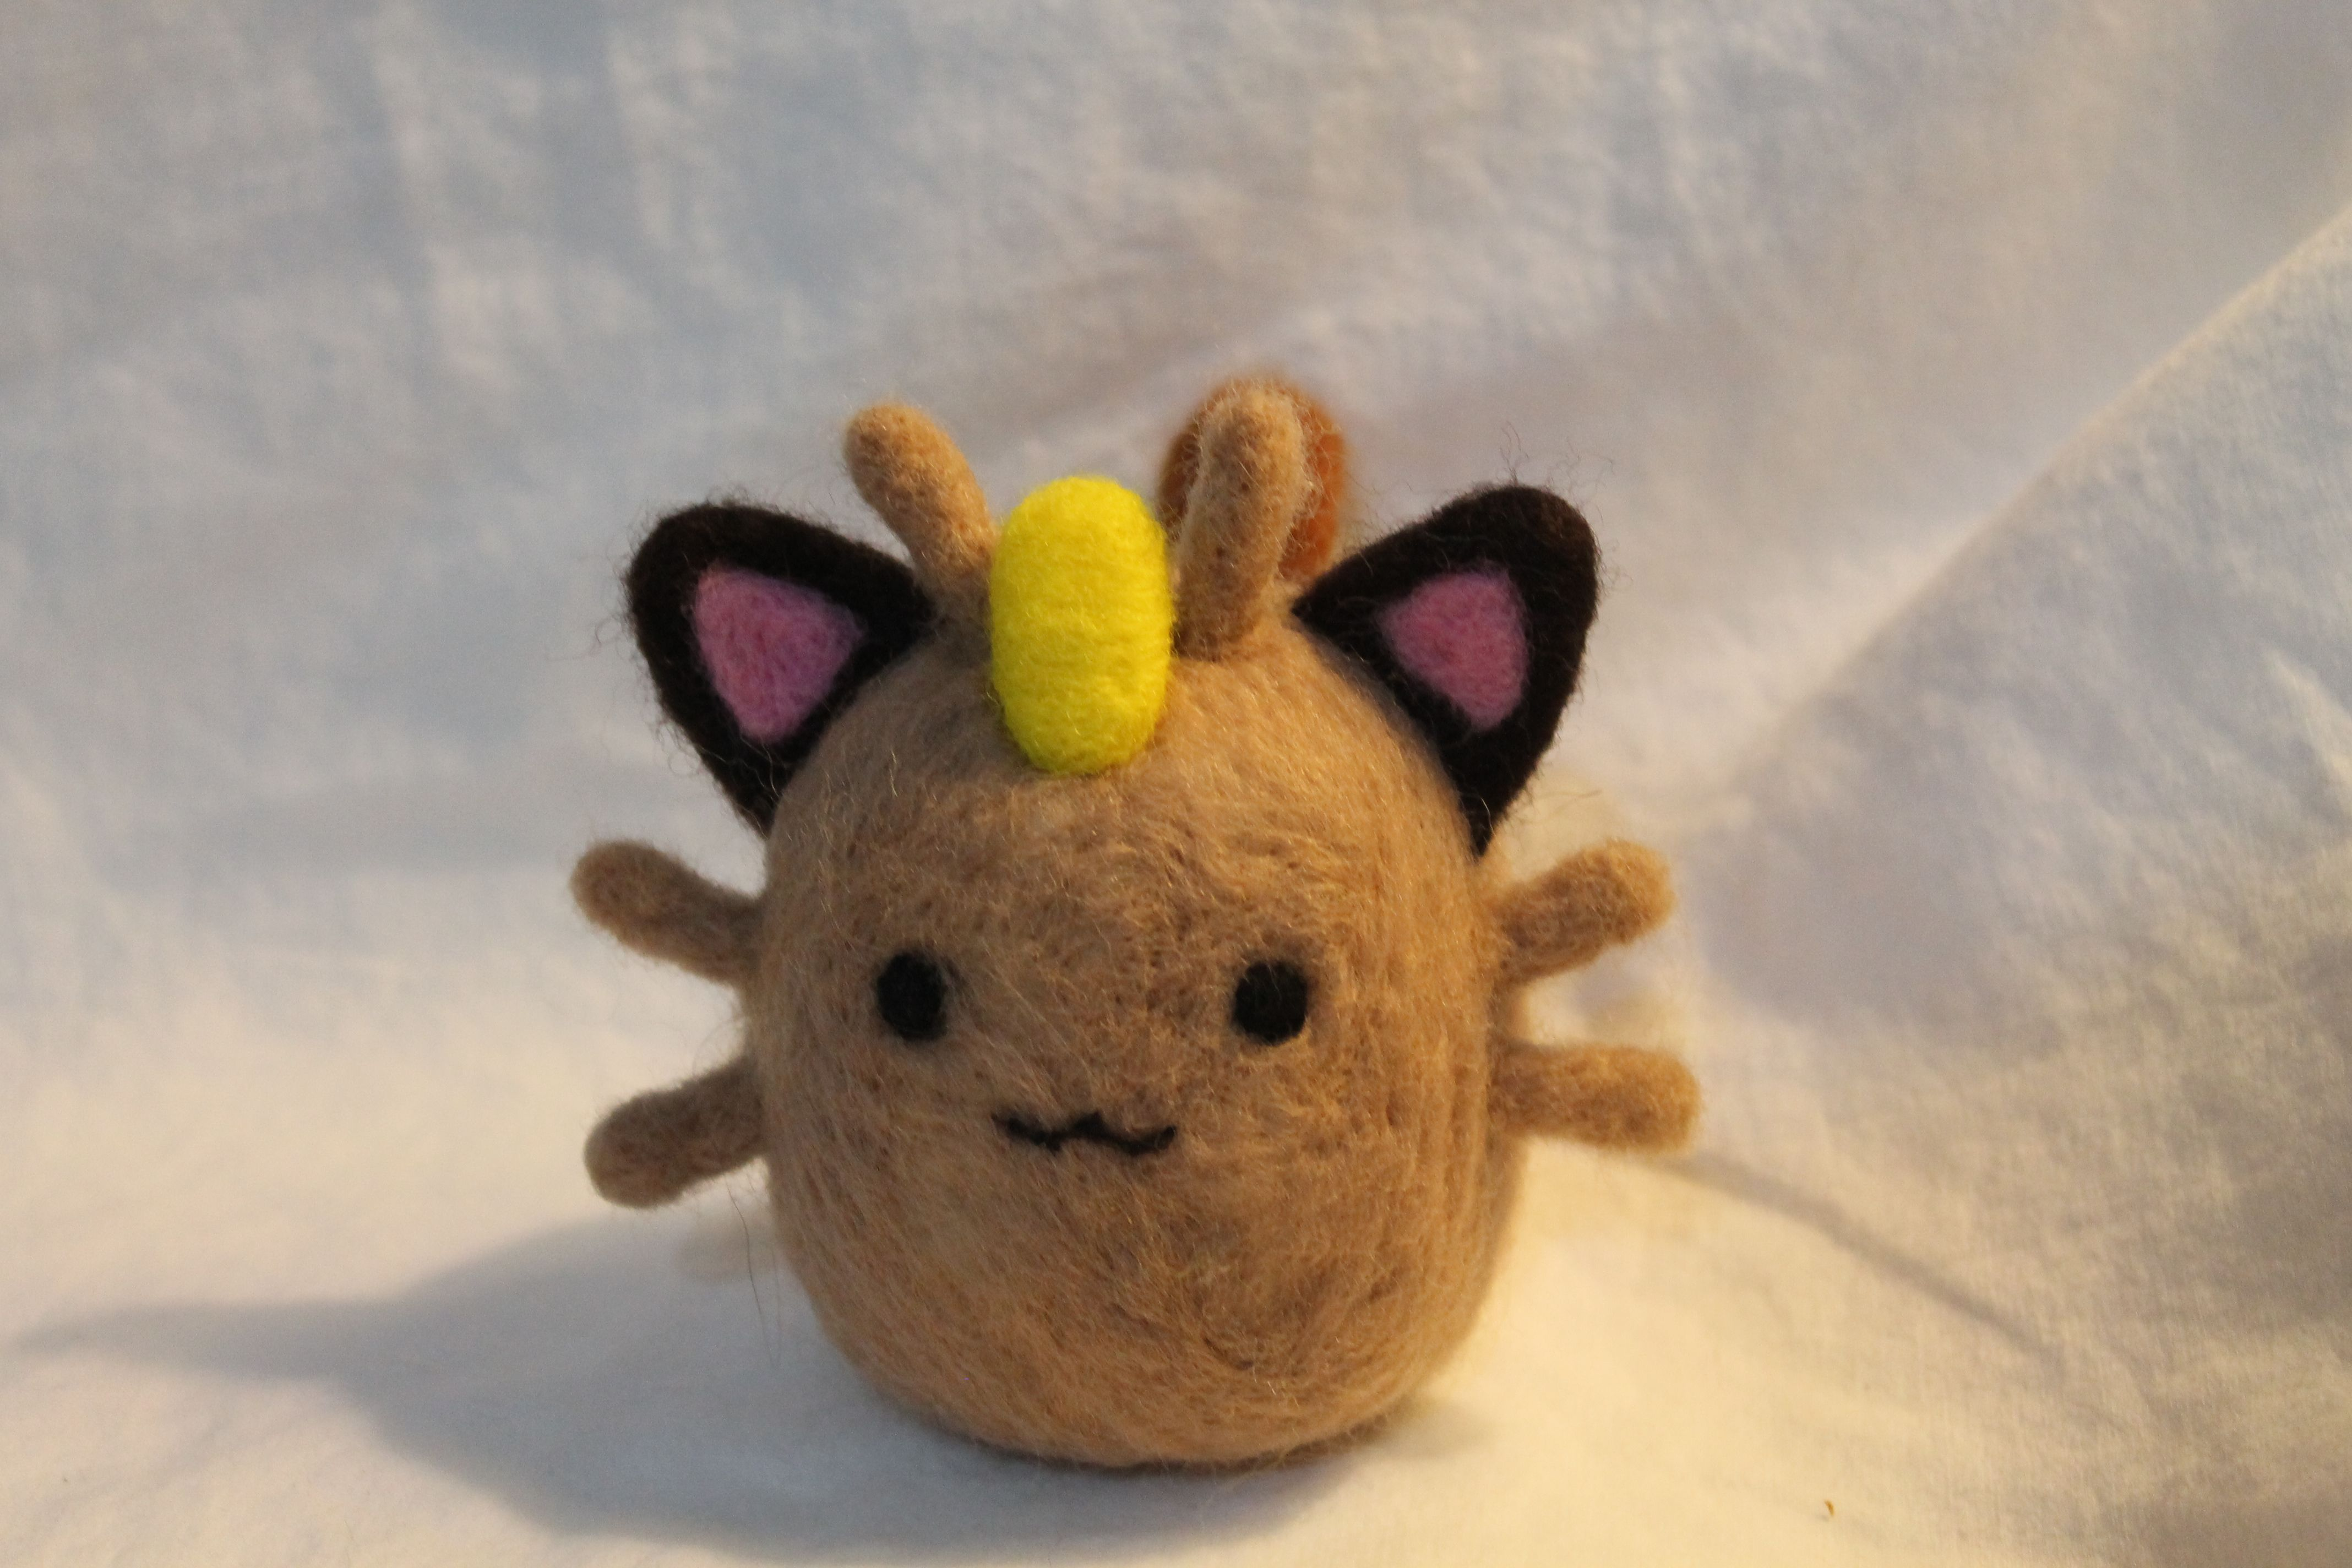 Meowth pokemon plush made from needle felted wool.